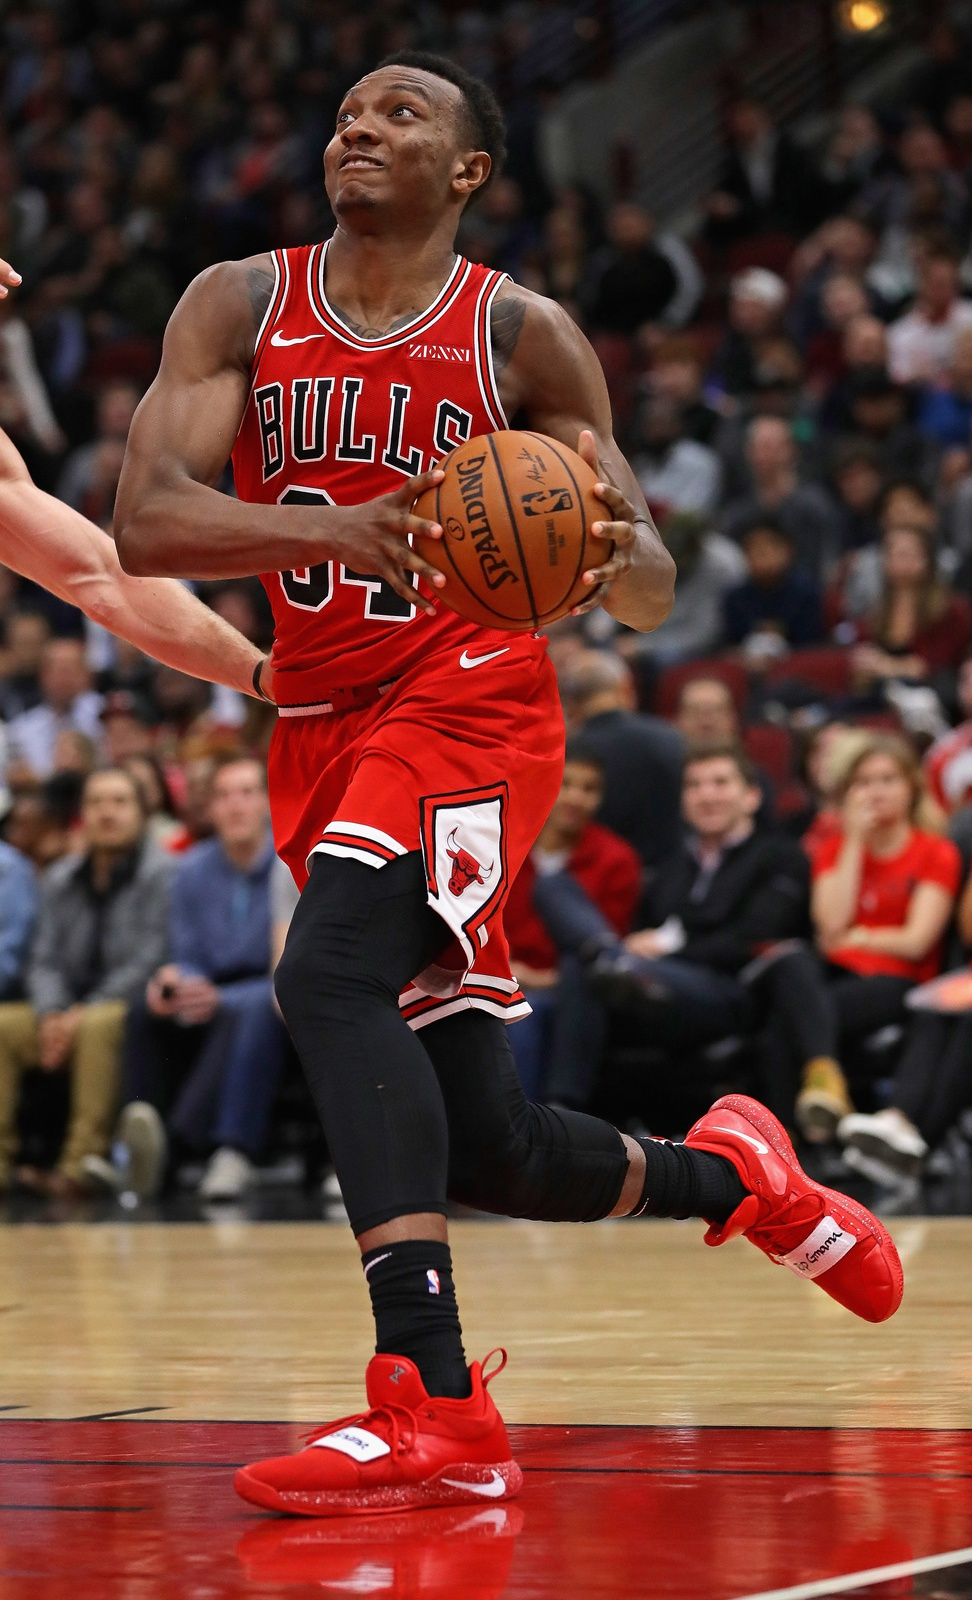 Wendell Carter Jr. #34 of the Chicago Bulls drives through the lane against the Denver Nuggets at the United Center on October 31, 2018 in Chicago, Illinois. The Nuggets defeated the Bulls 108-107 in overtime.